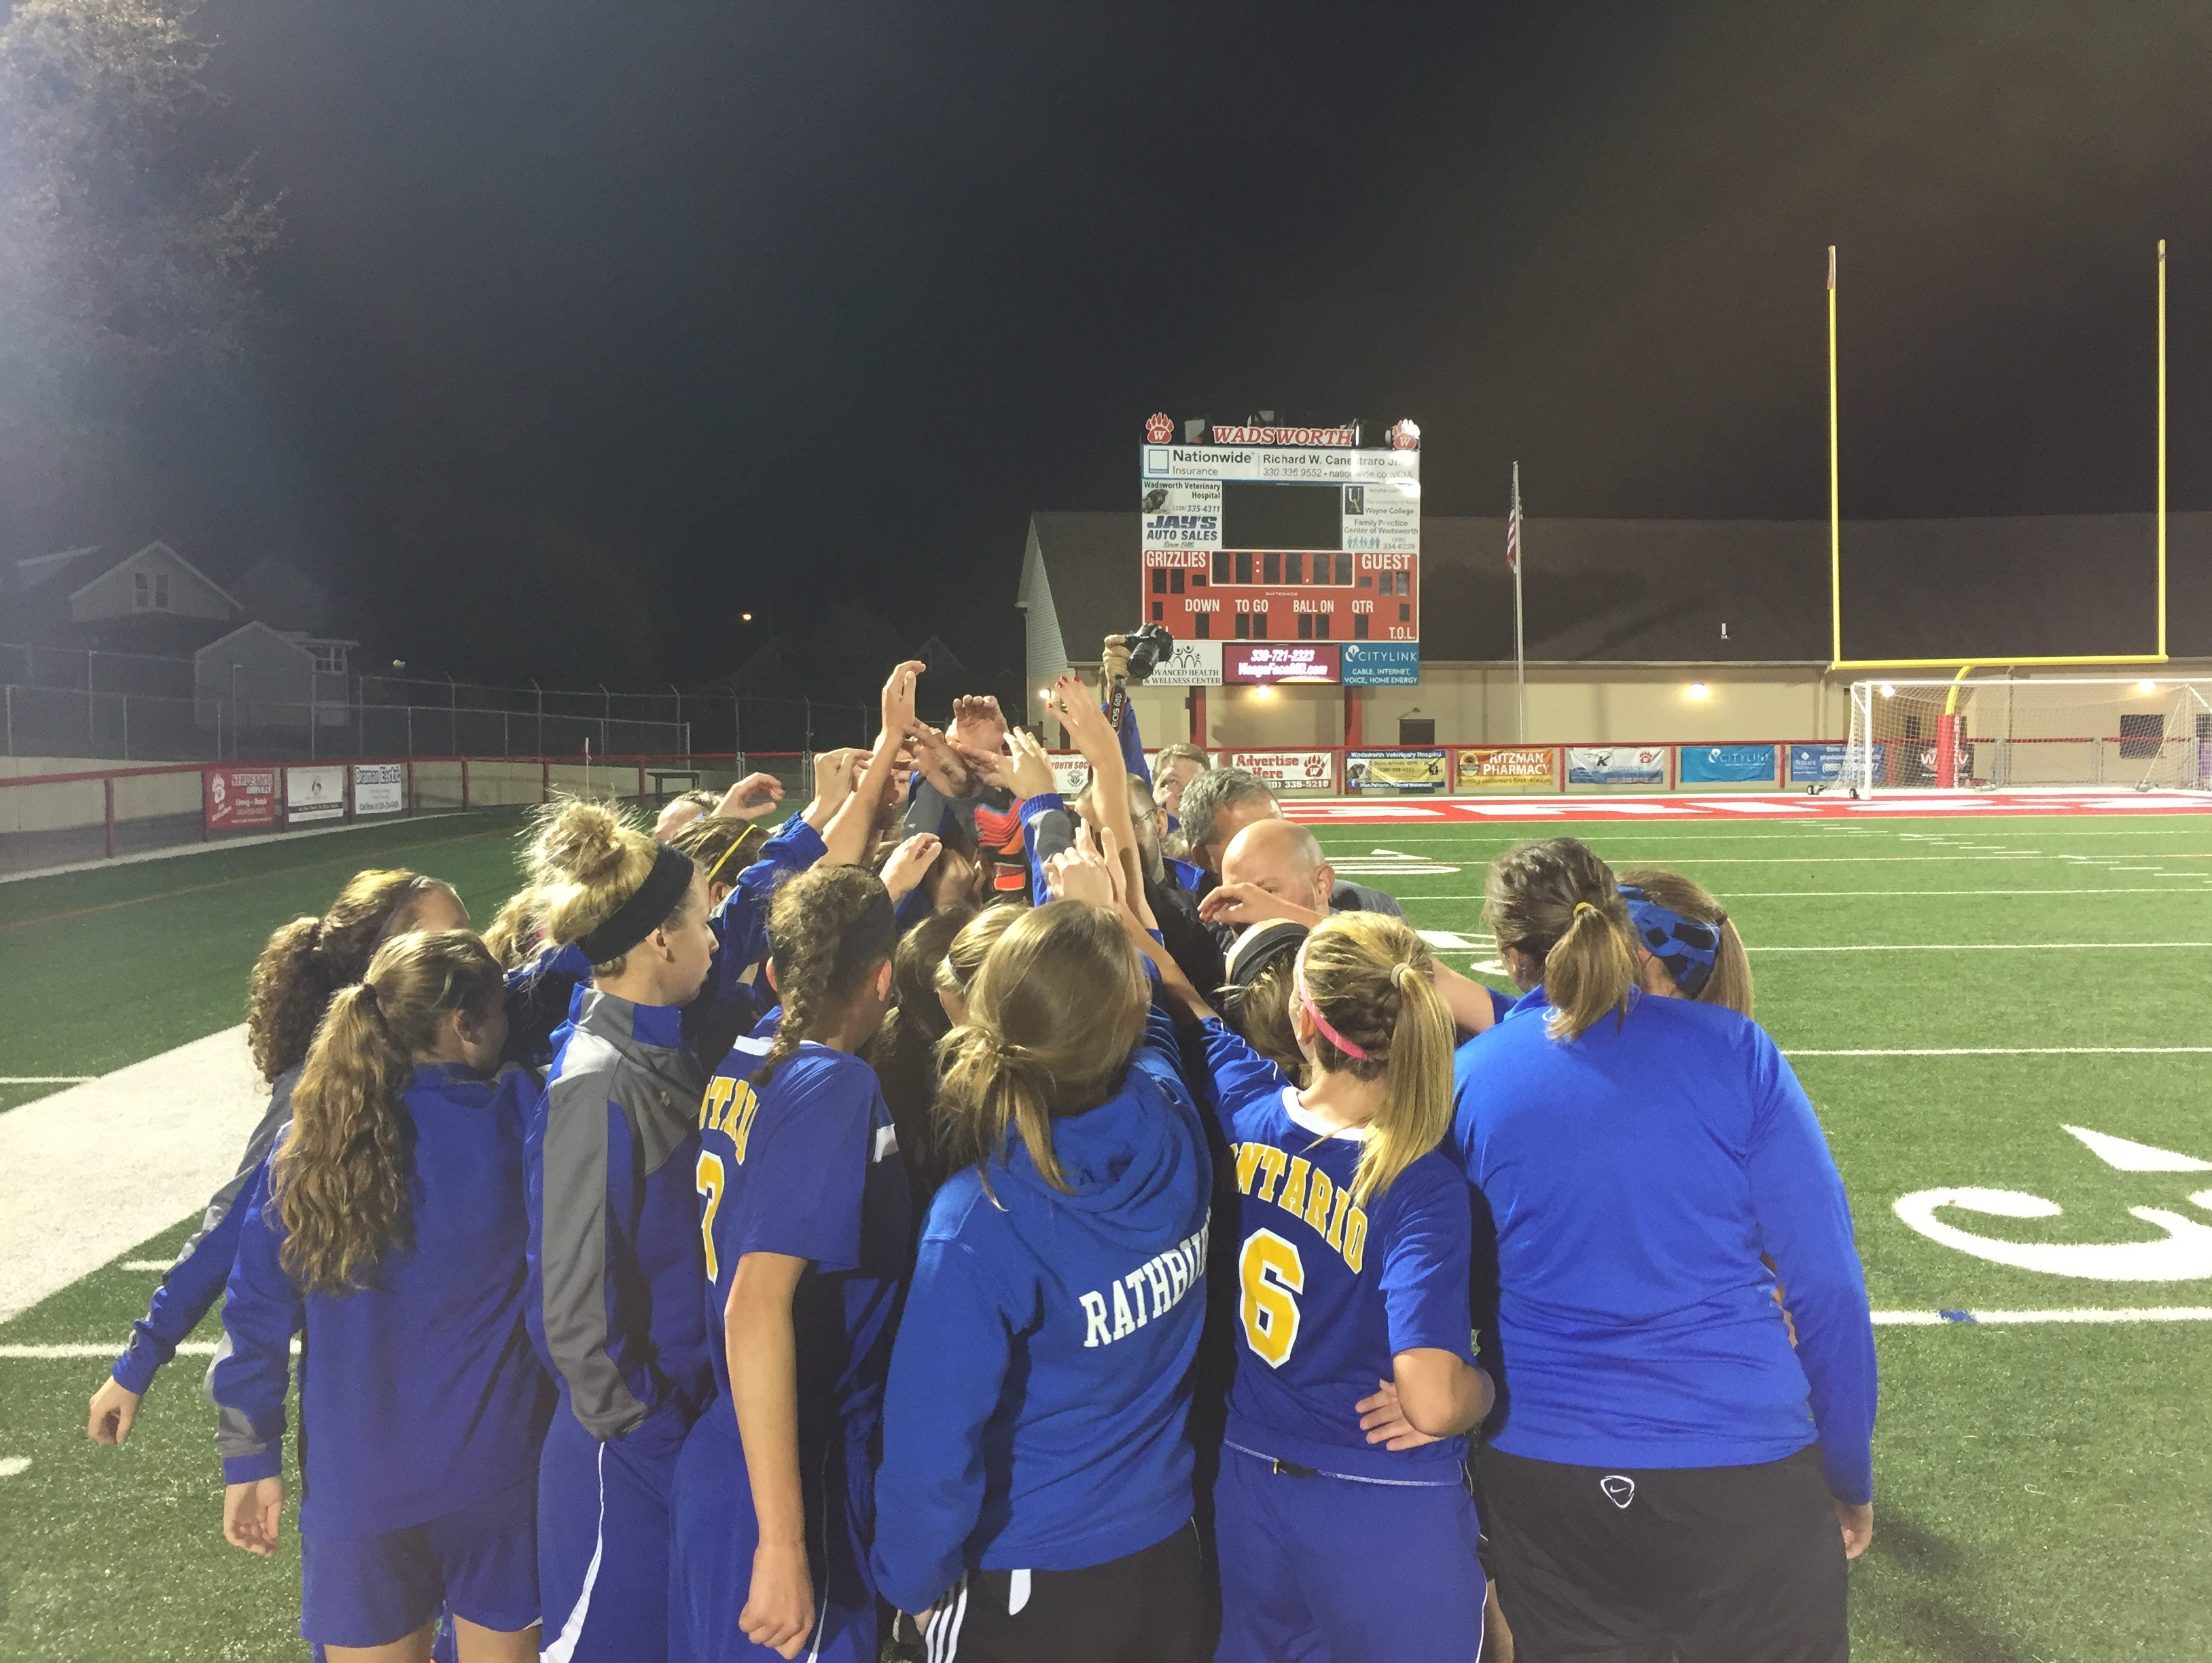 The Ontario girls soccer teams meets after winning a Division II regional semifinal match 3-2 over Parma Heights Holy Name at Wadsworth Tuesday night.